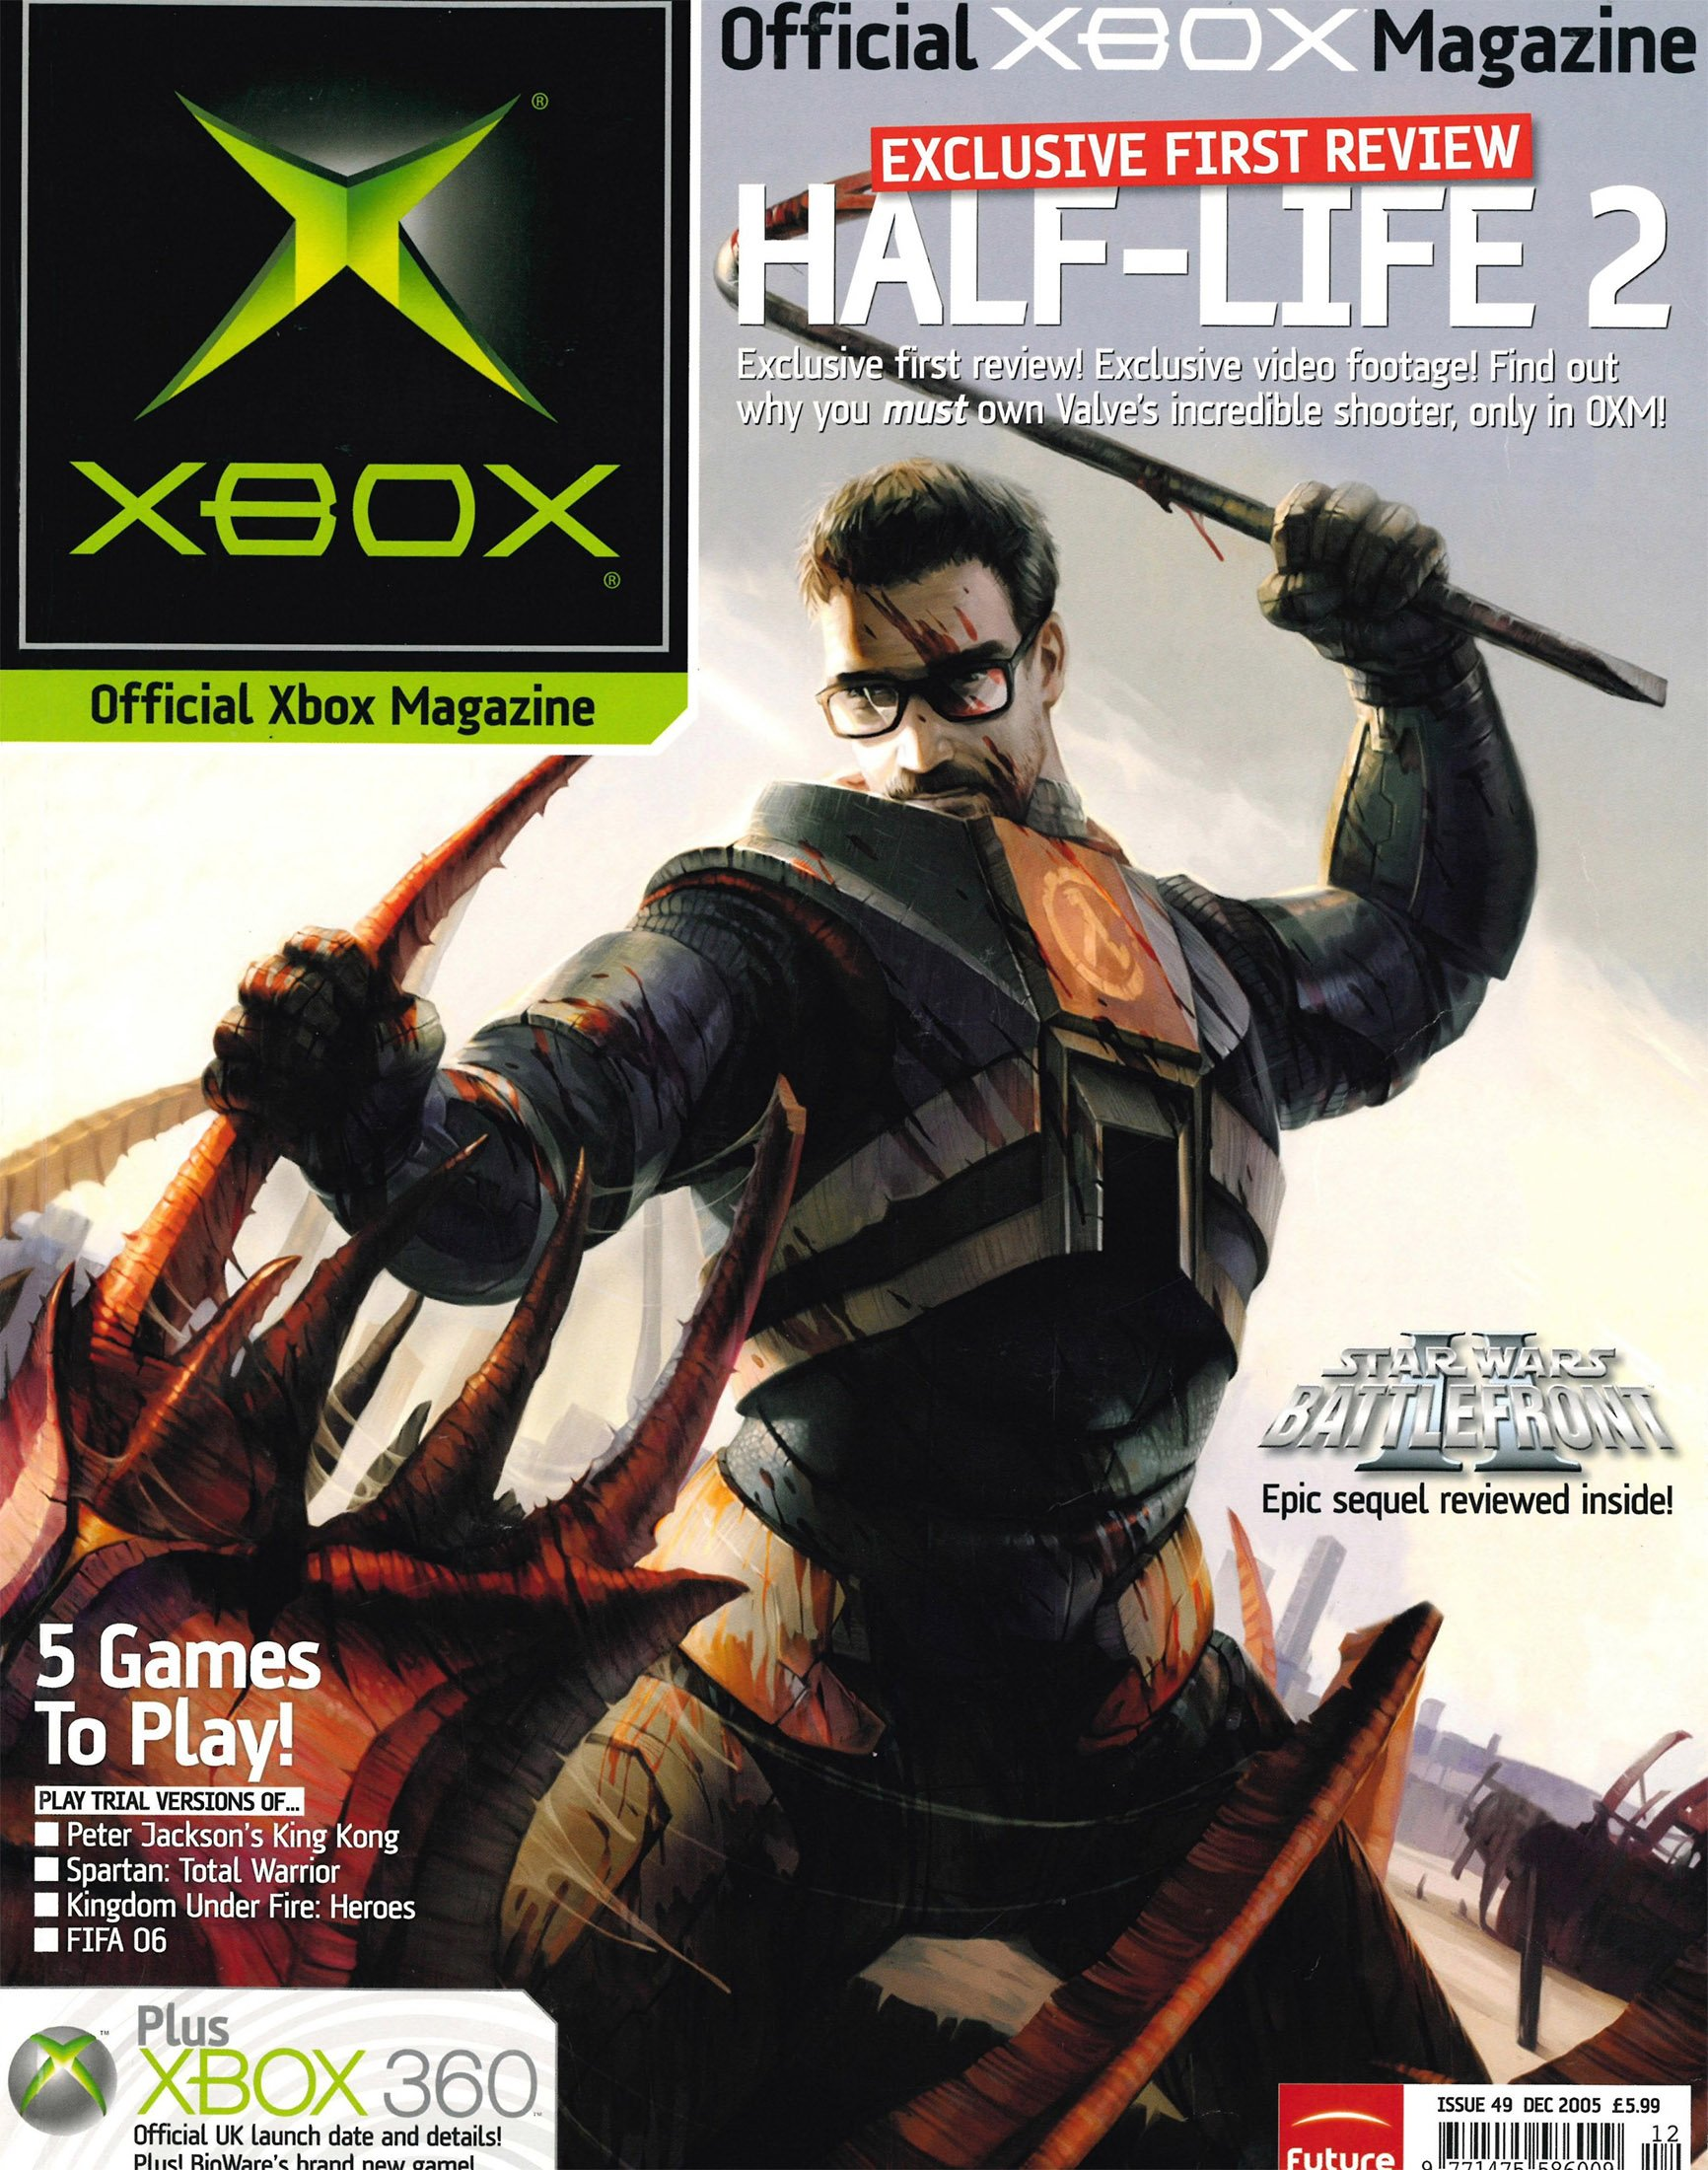 Official UK Xbox Magazine Issue 49 - December 2005